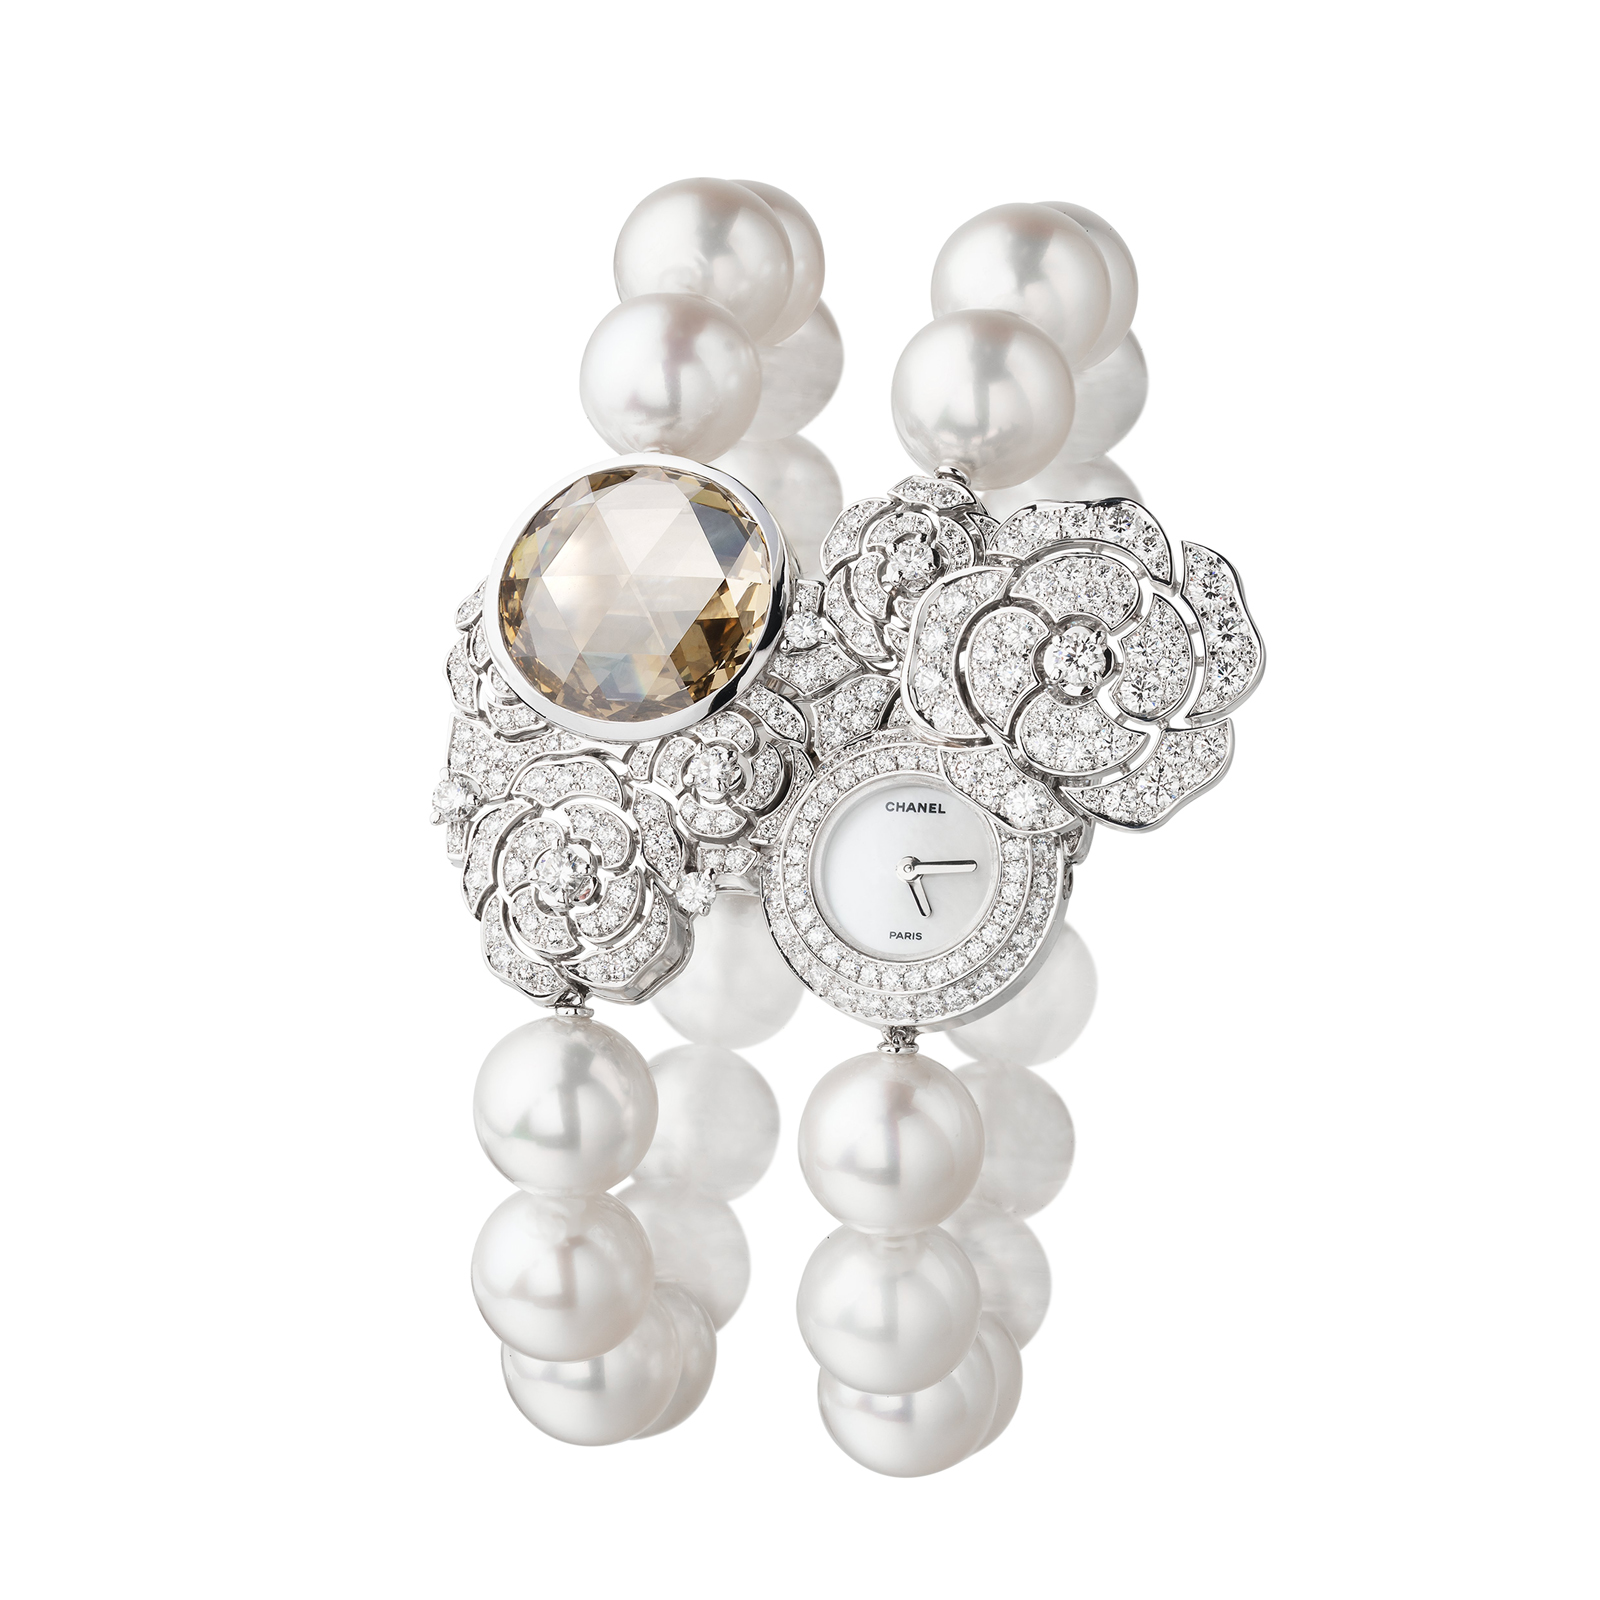 Coco Avant Chanel High Jewelry And Watch Collection